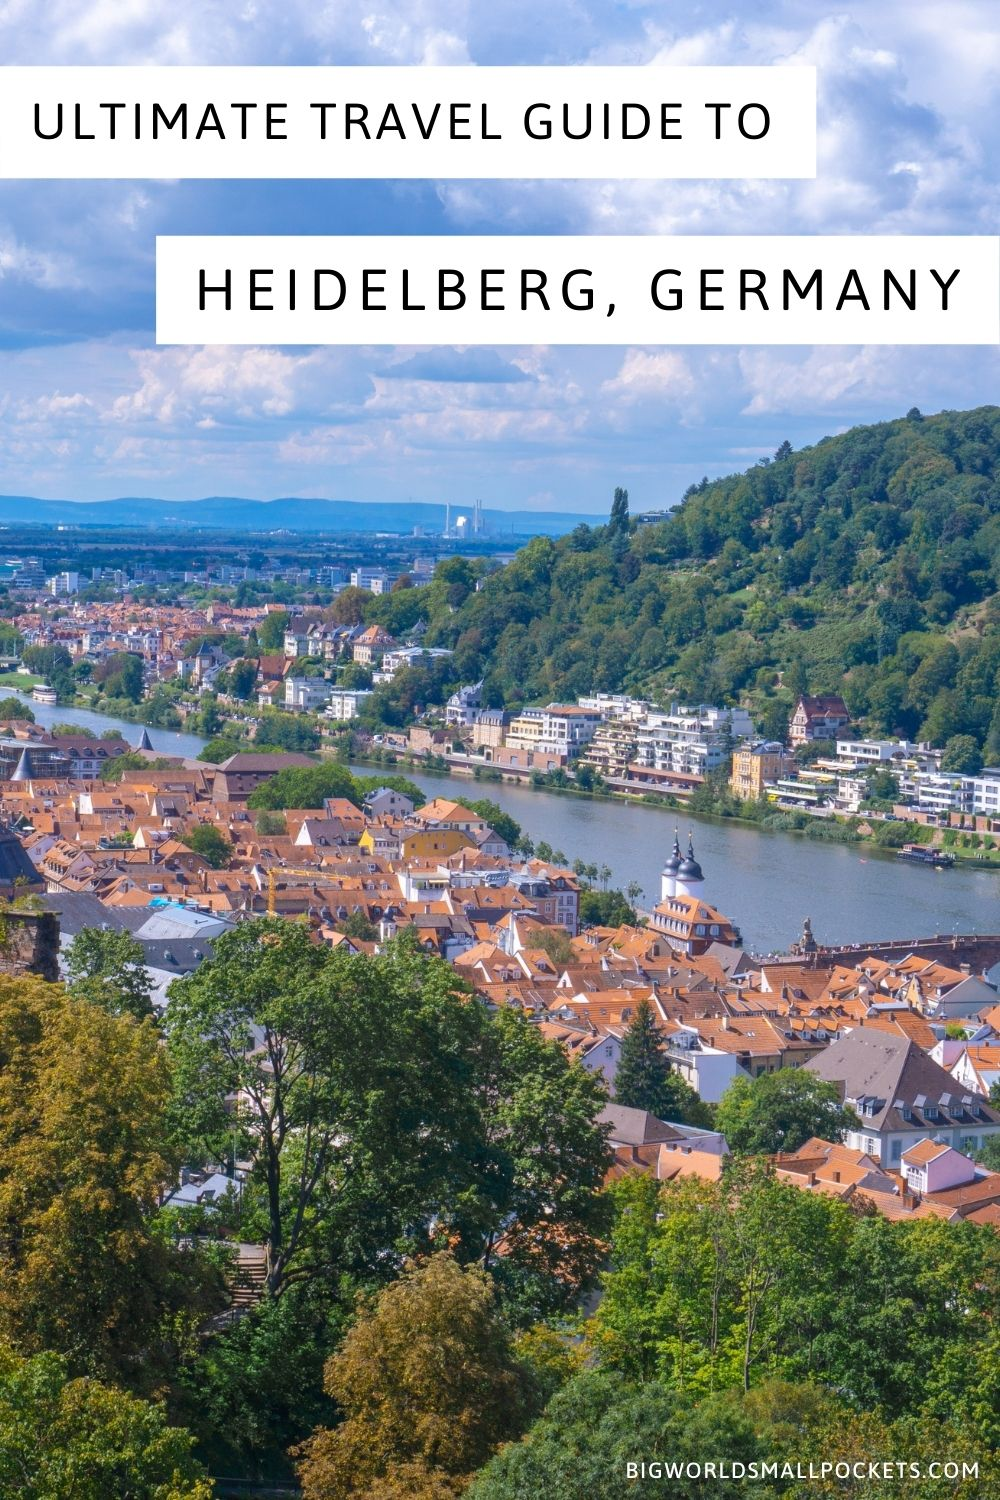 The Ultimate Travel Guide to Heidelberg, Germany